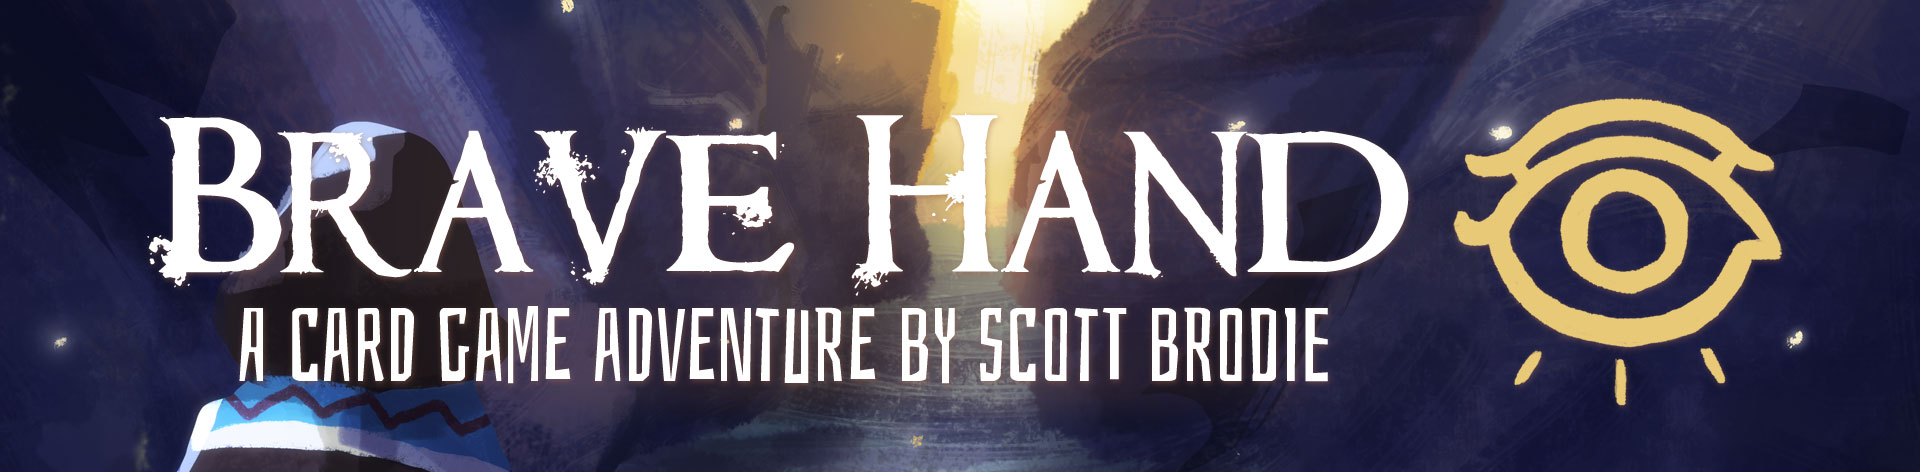 Brave Hand Game Banner Image